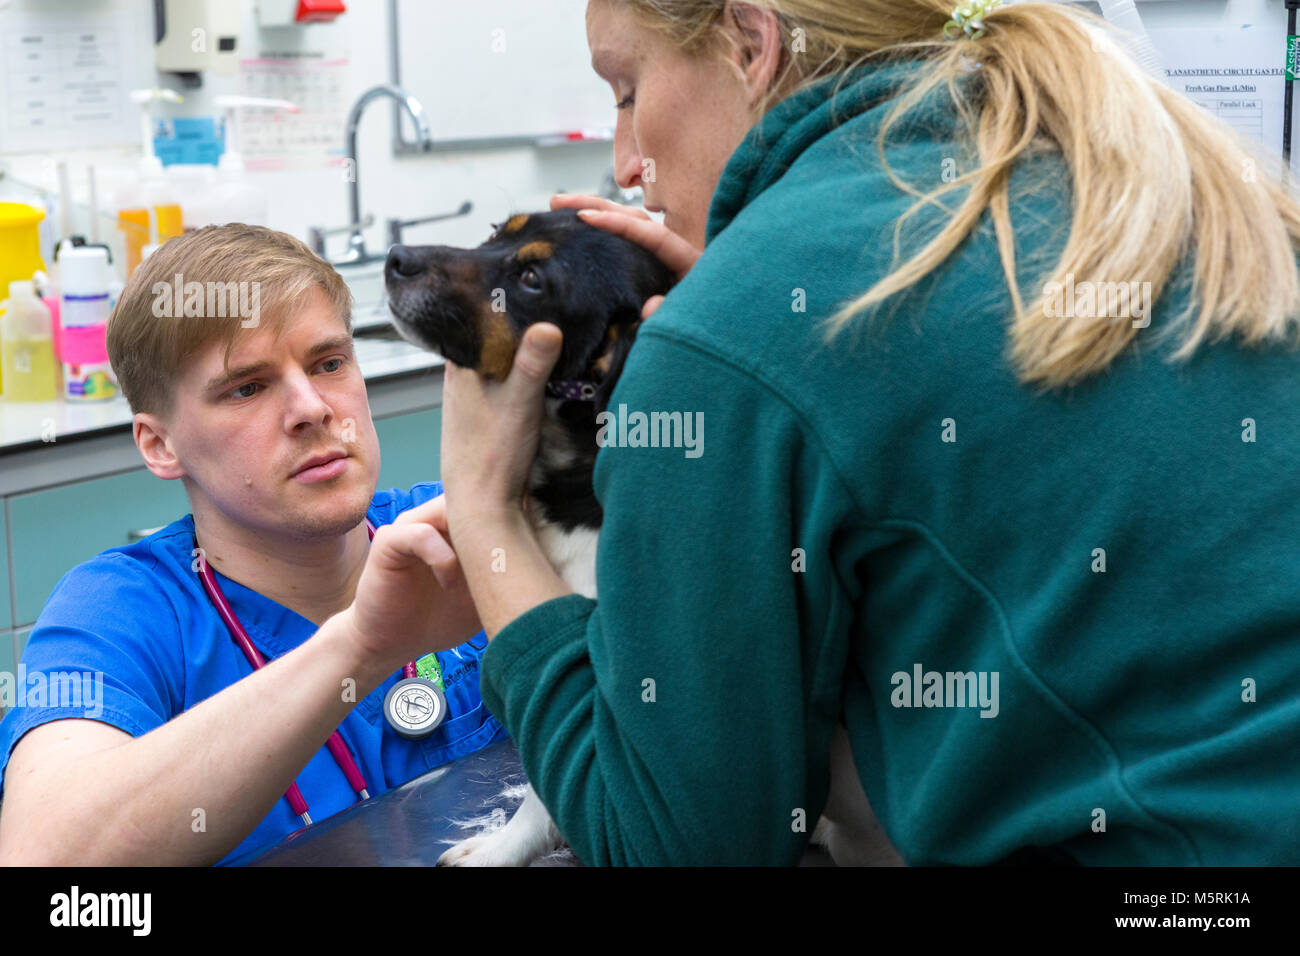 Veterinary surgeon checks a small dog in a veterinary surgery - Stock Image